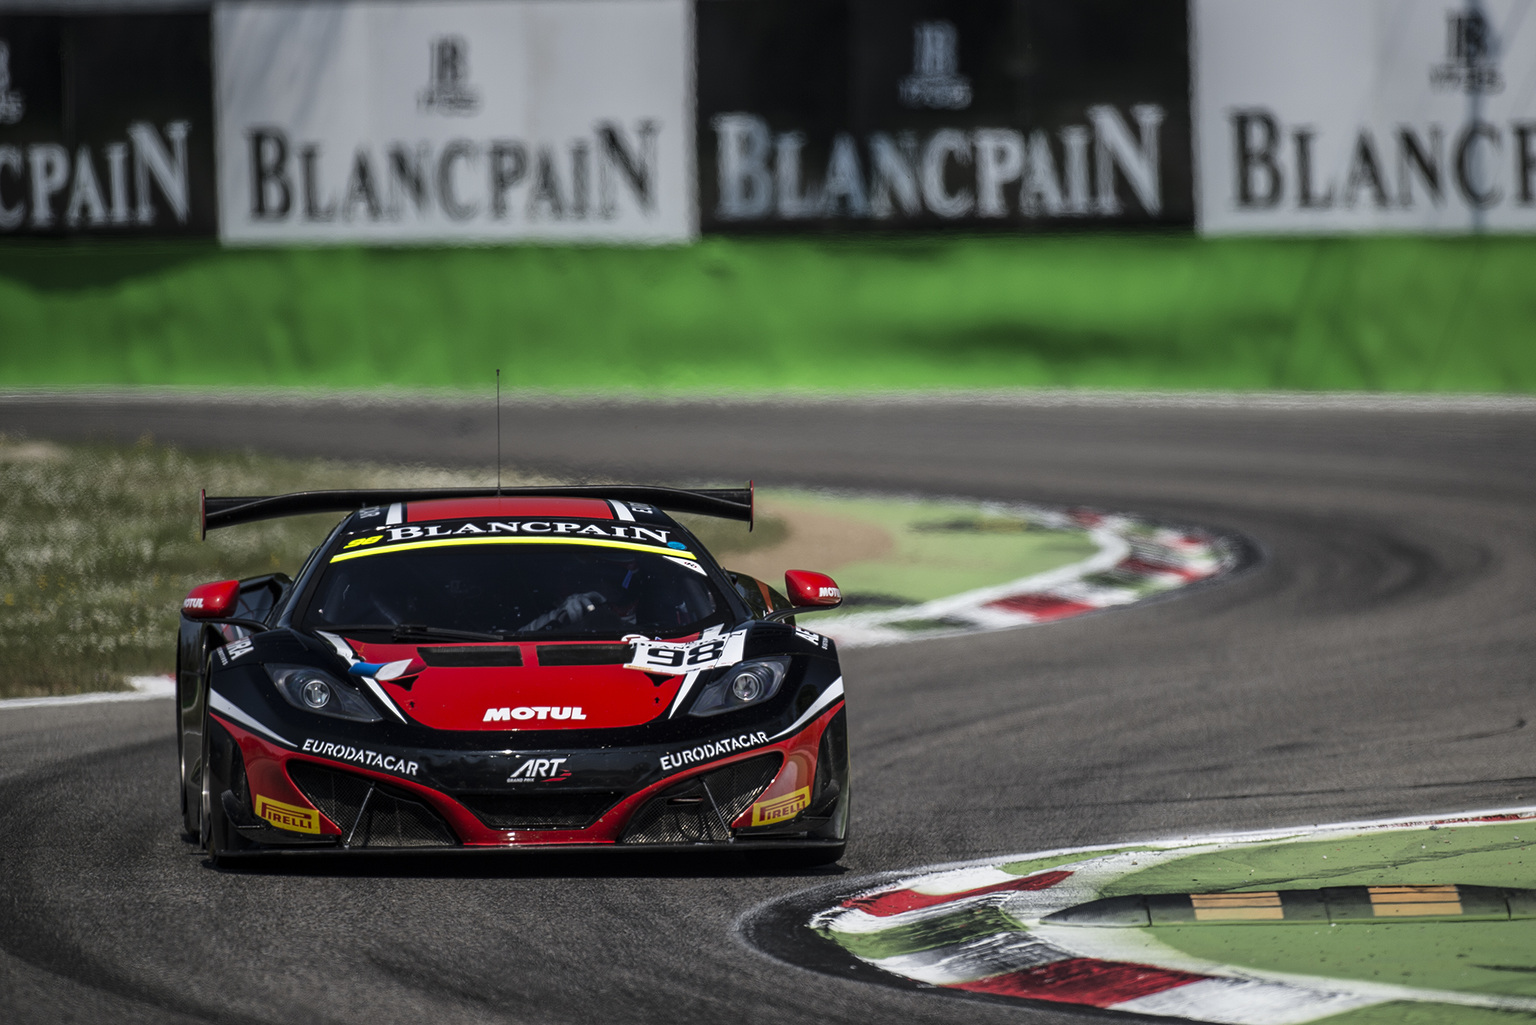 hight resolution of 2014 blancpain gt series begins at monza